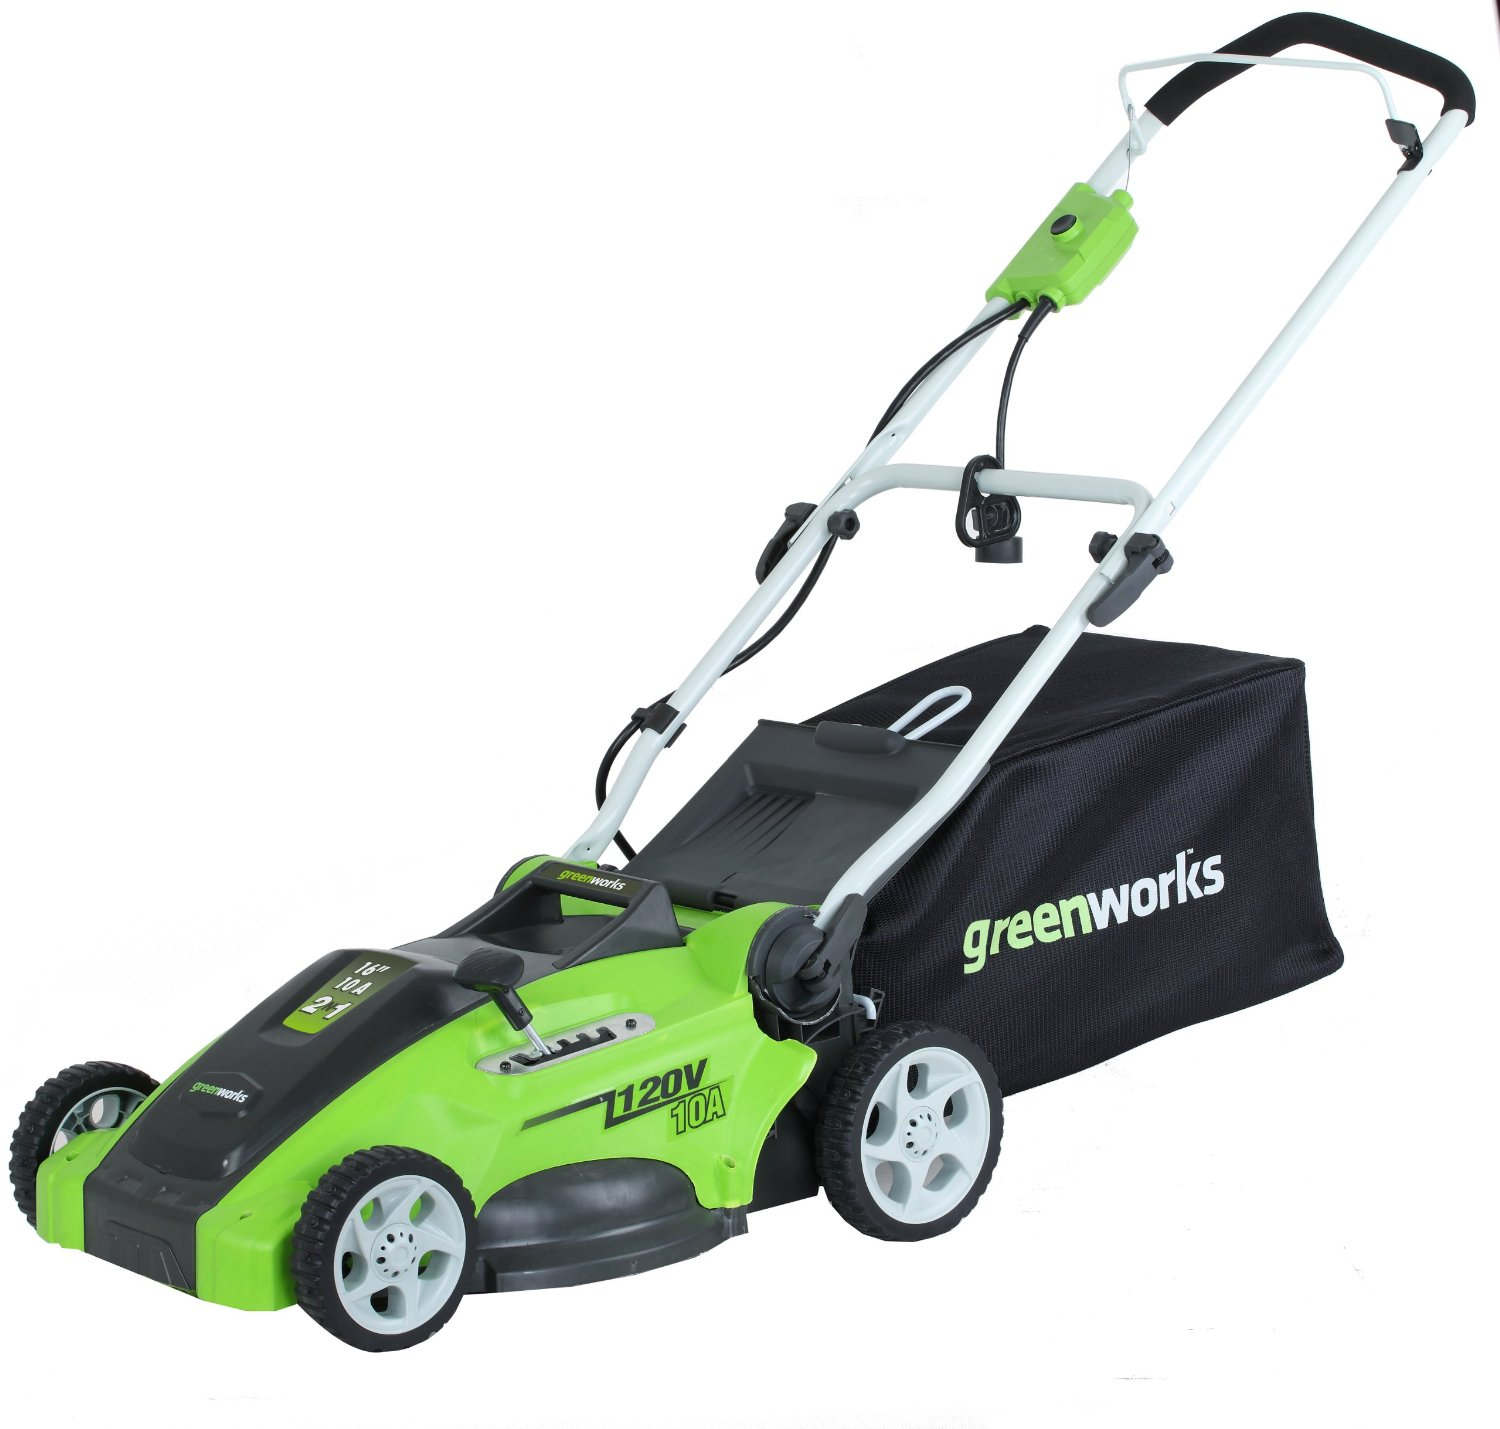 Review of - GreenWorks 25142 10 Amp Corded 16 Inch Lawn Mower